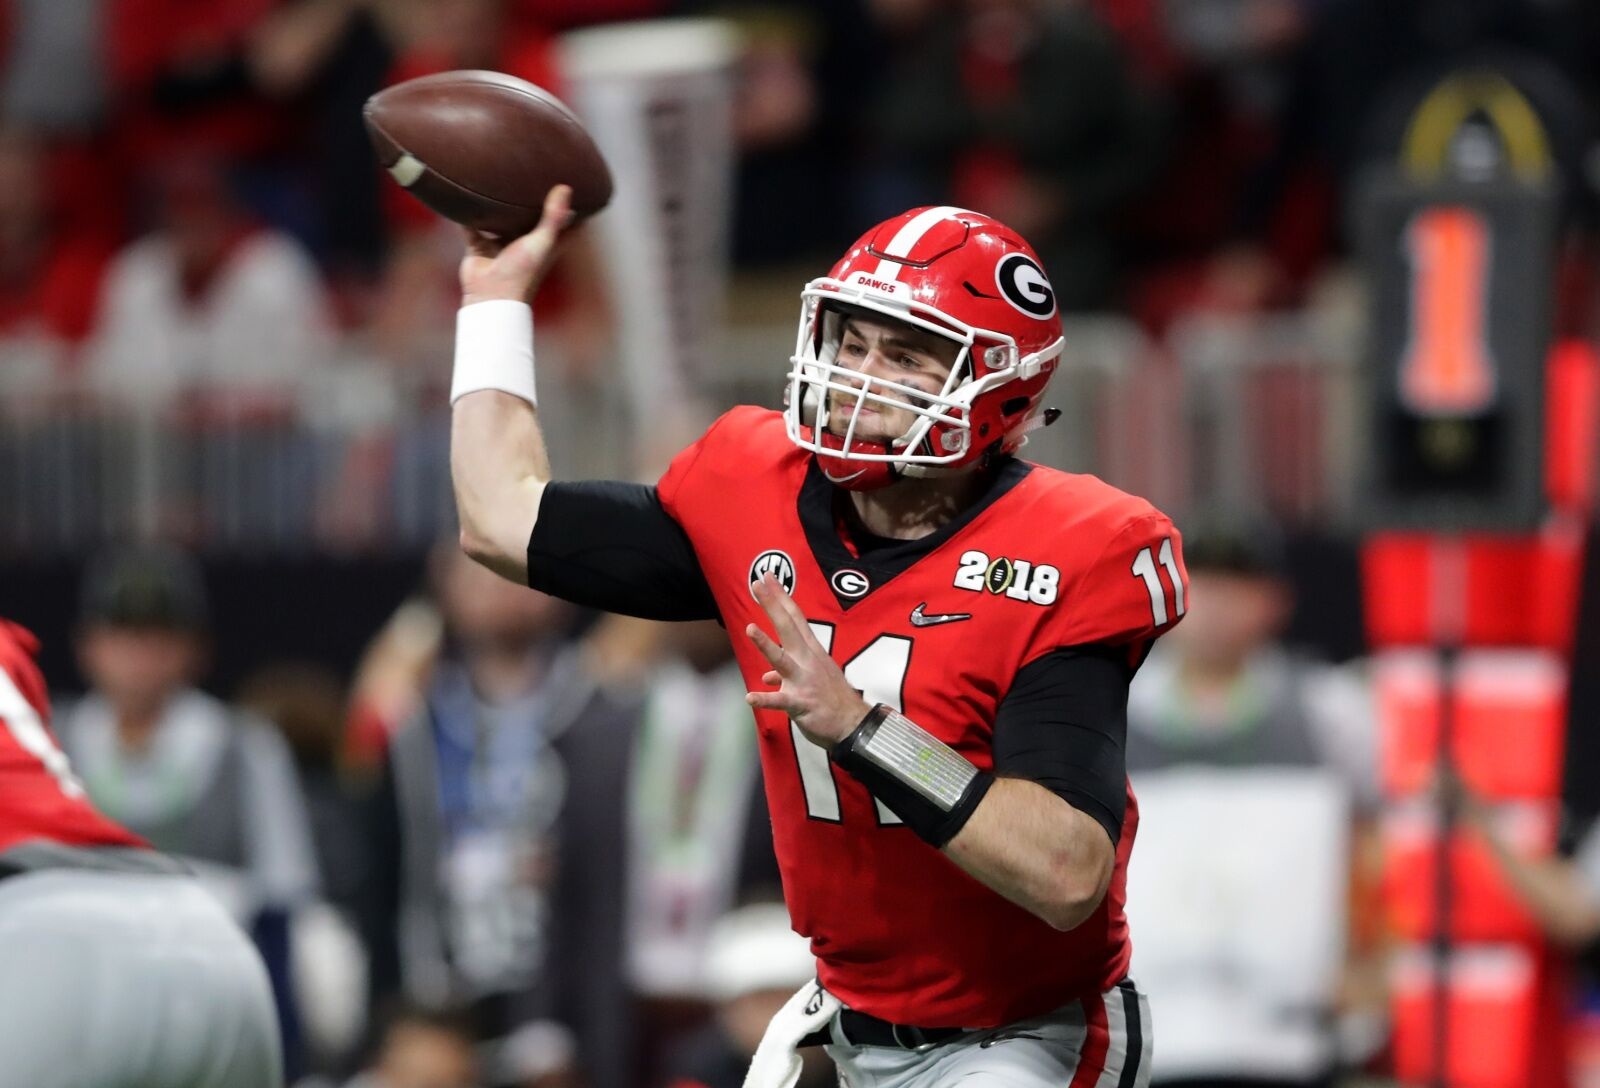 Georgia Bulldogs Facing First Test in Prime Time Against Notre Dame